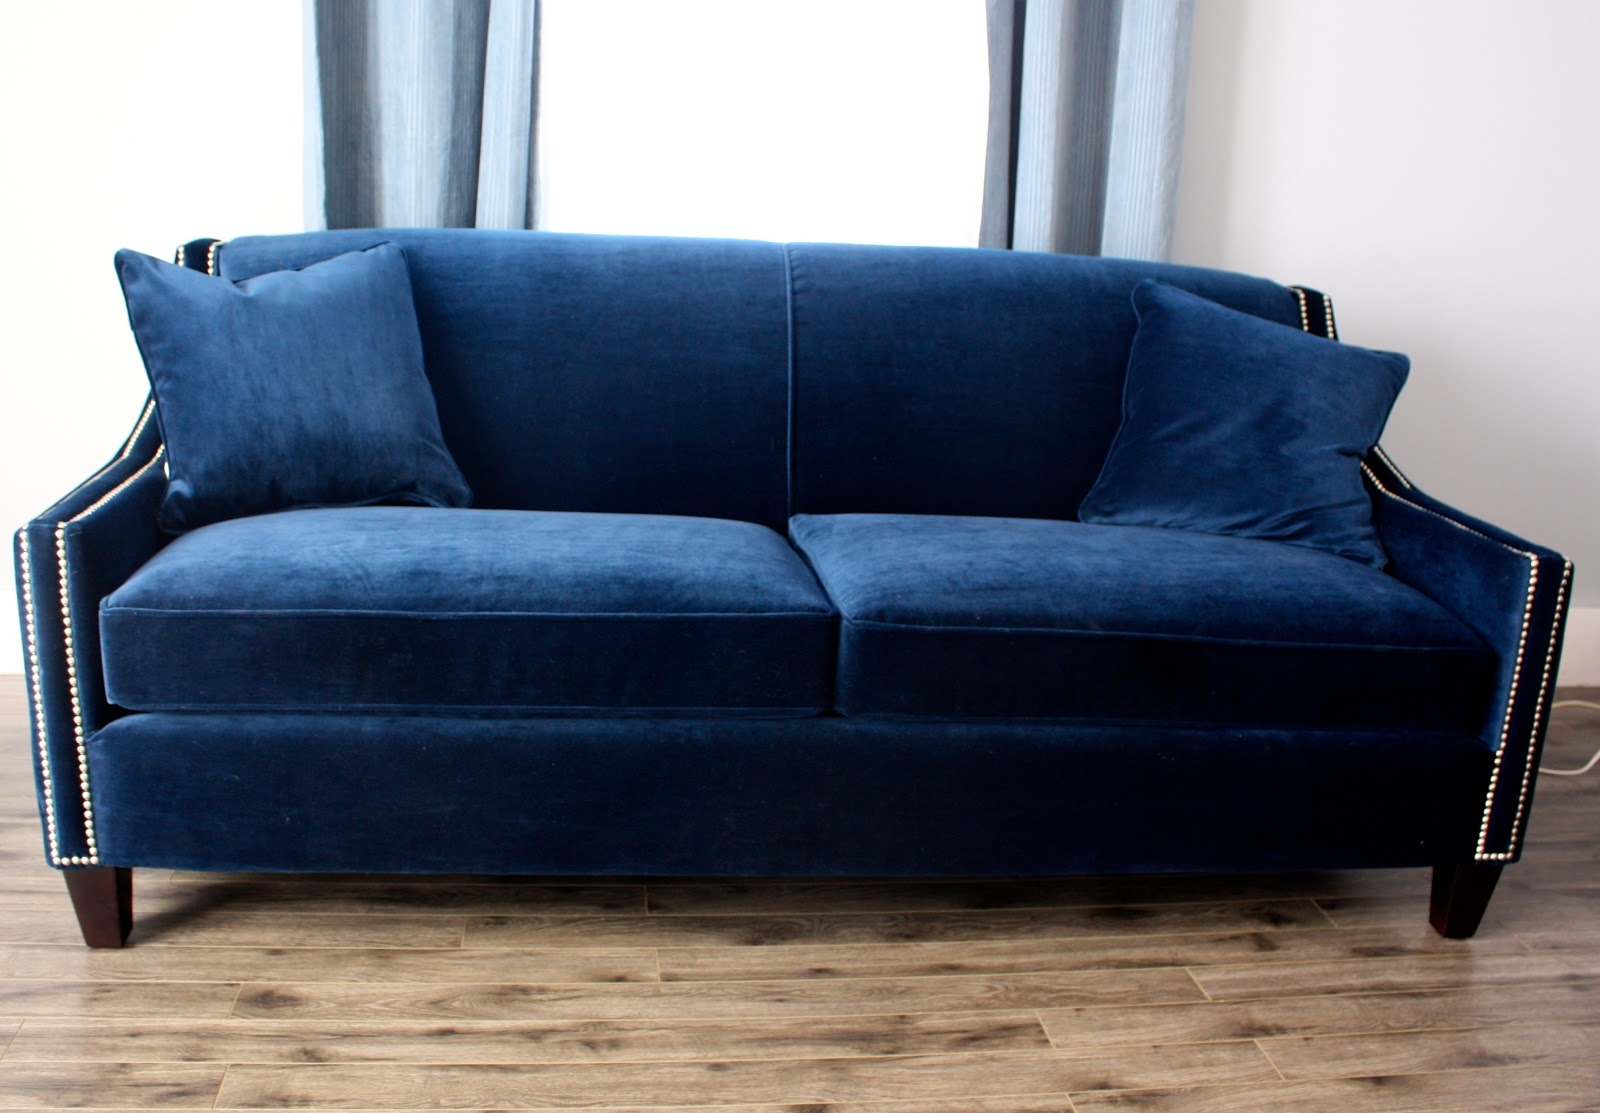 Navy Blue Sofa Slipcover Best Home Furniture Ideas Inside Blue Sofa Chairs (Image 12 of 15)